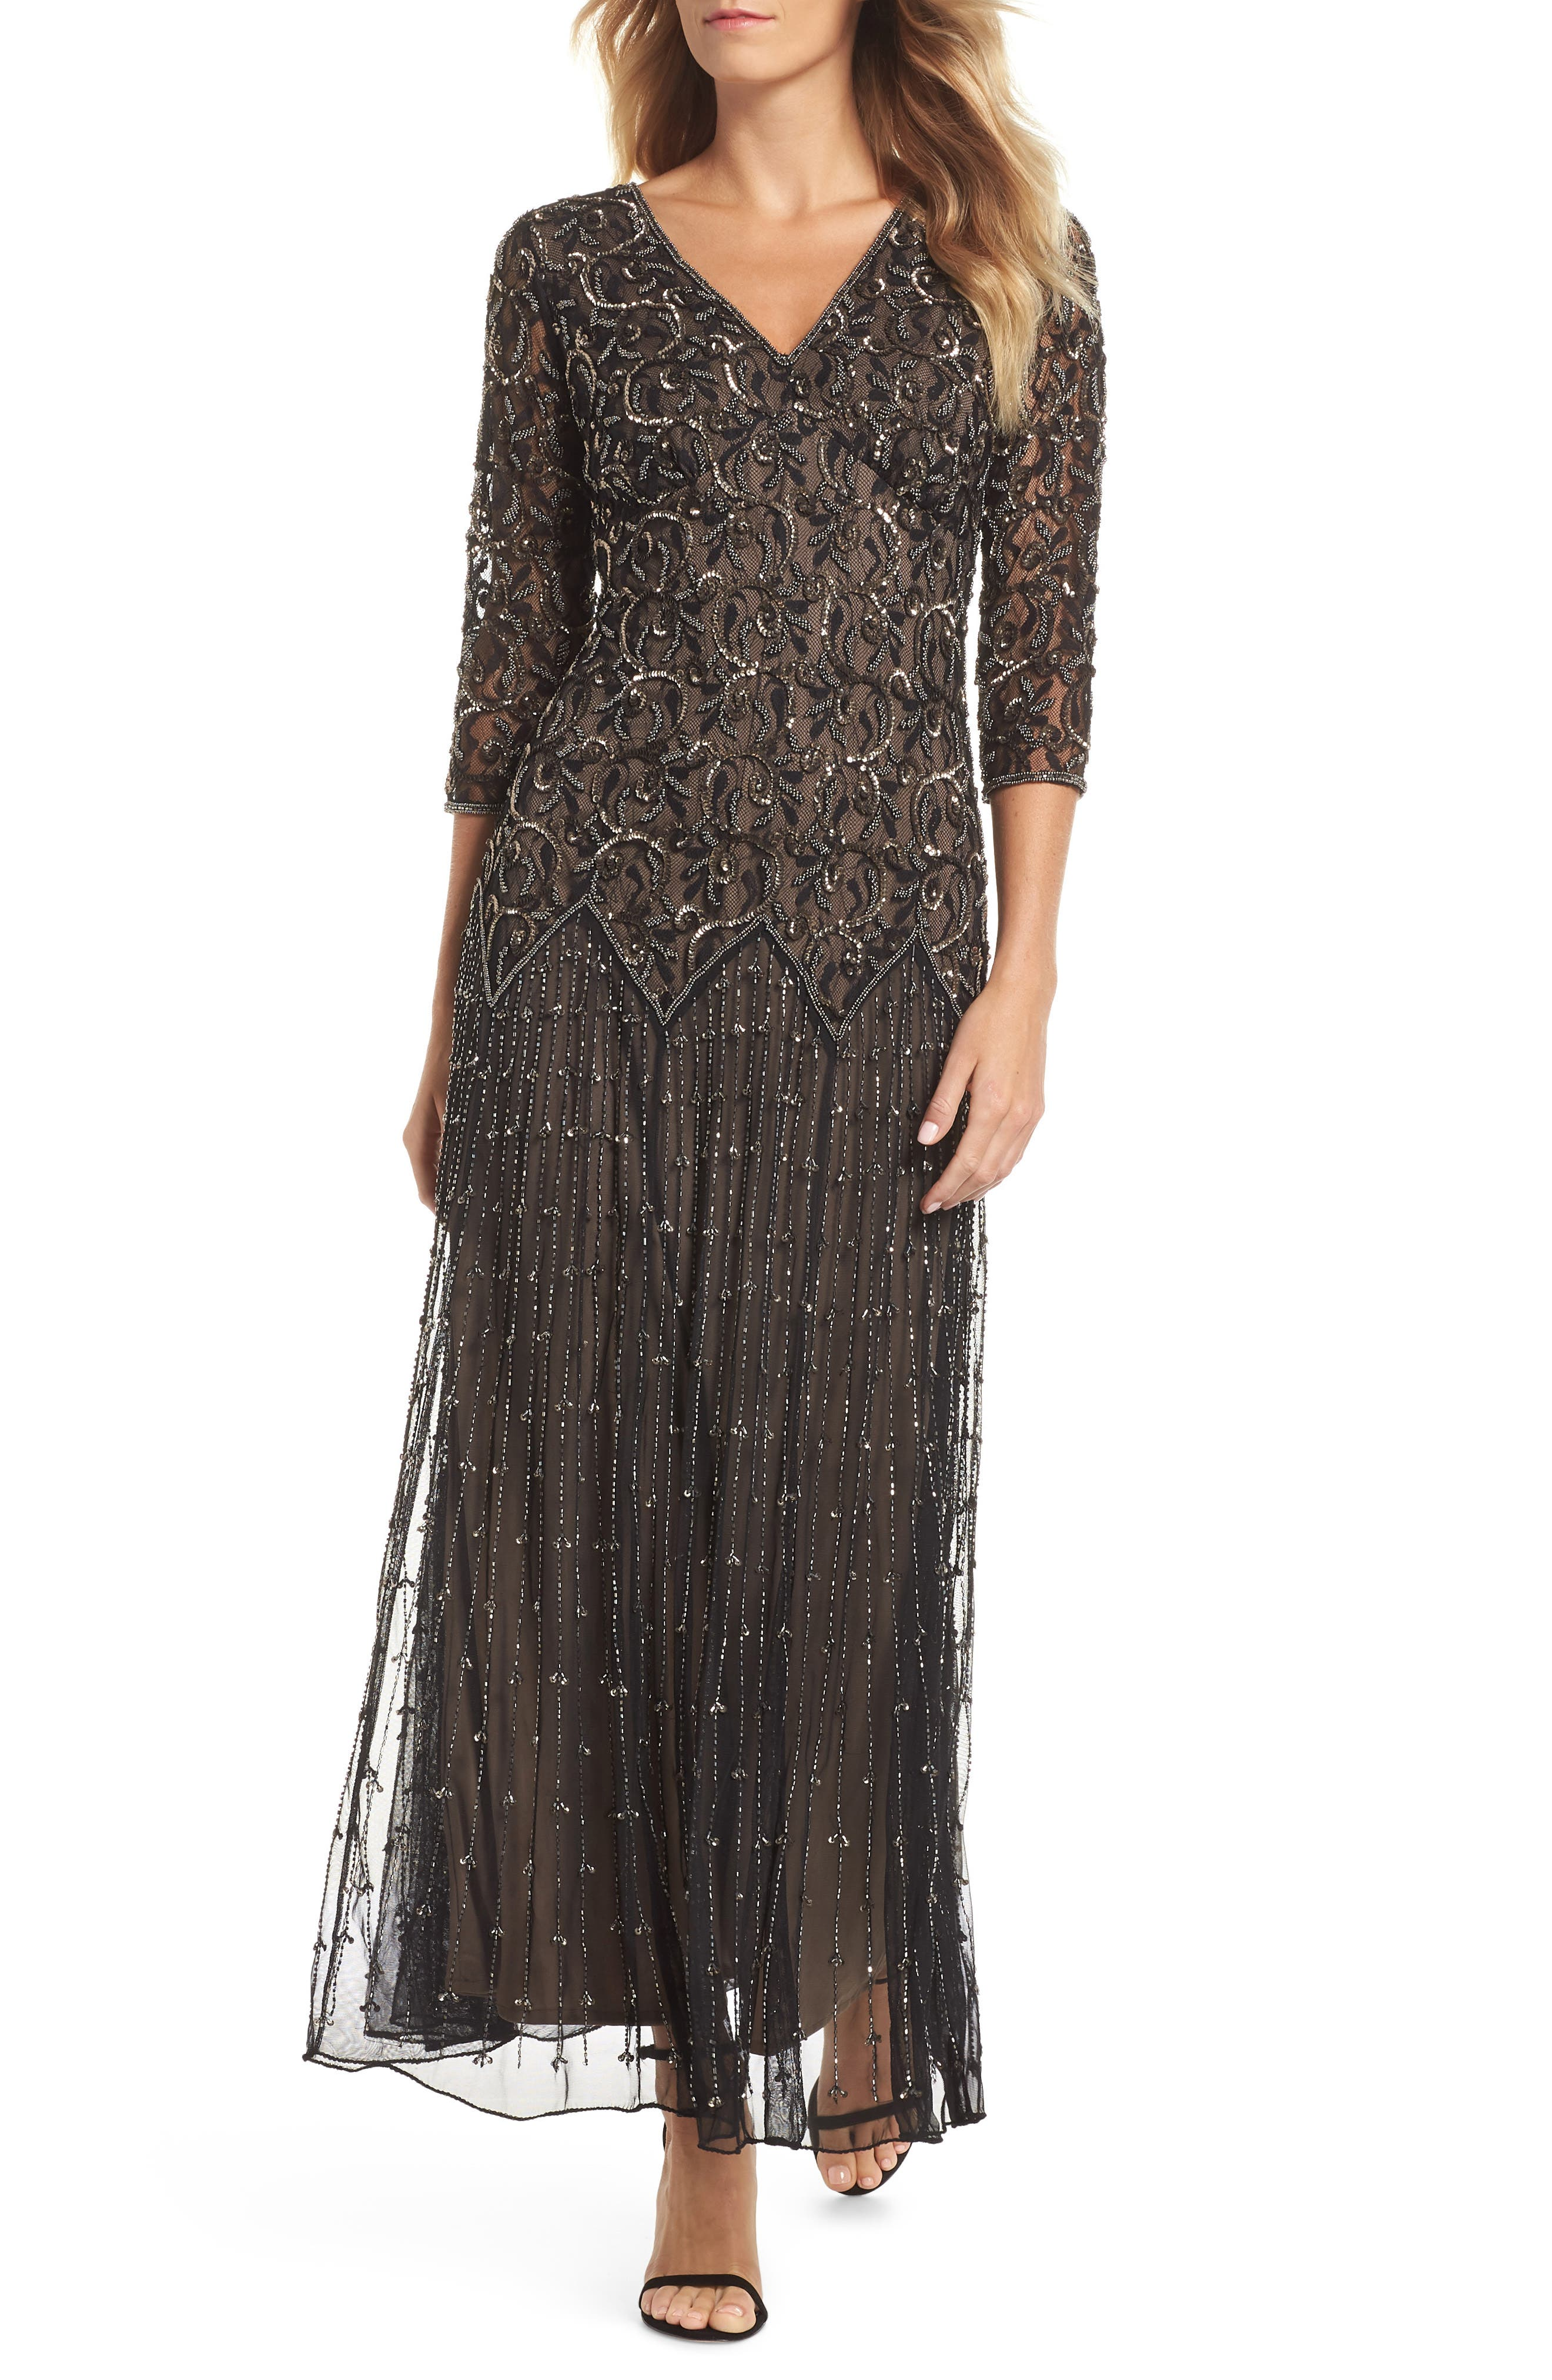 1930s Dresses | 30s Art Deco Dress Womens Pisarro Nights Embellished Mesh Gown Size 14 - Black $130.80 AT vintagedancer.com